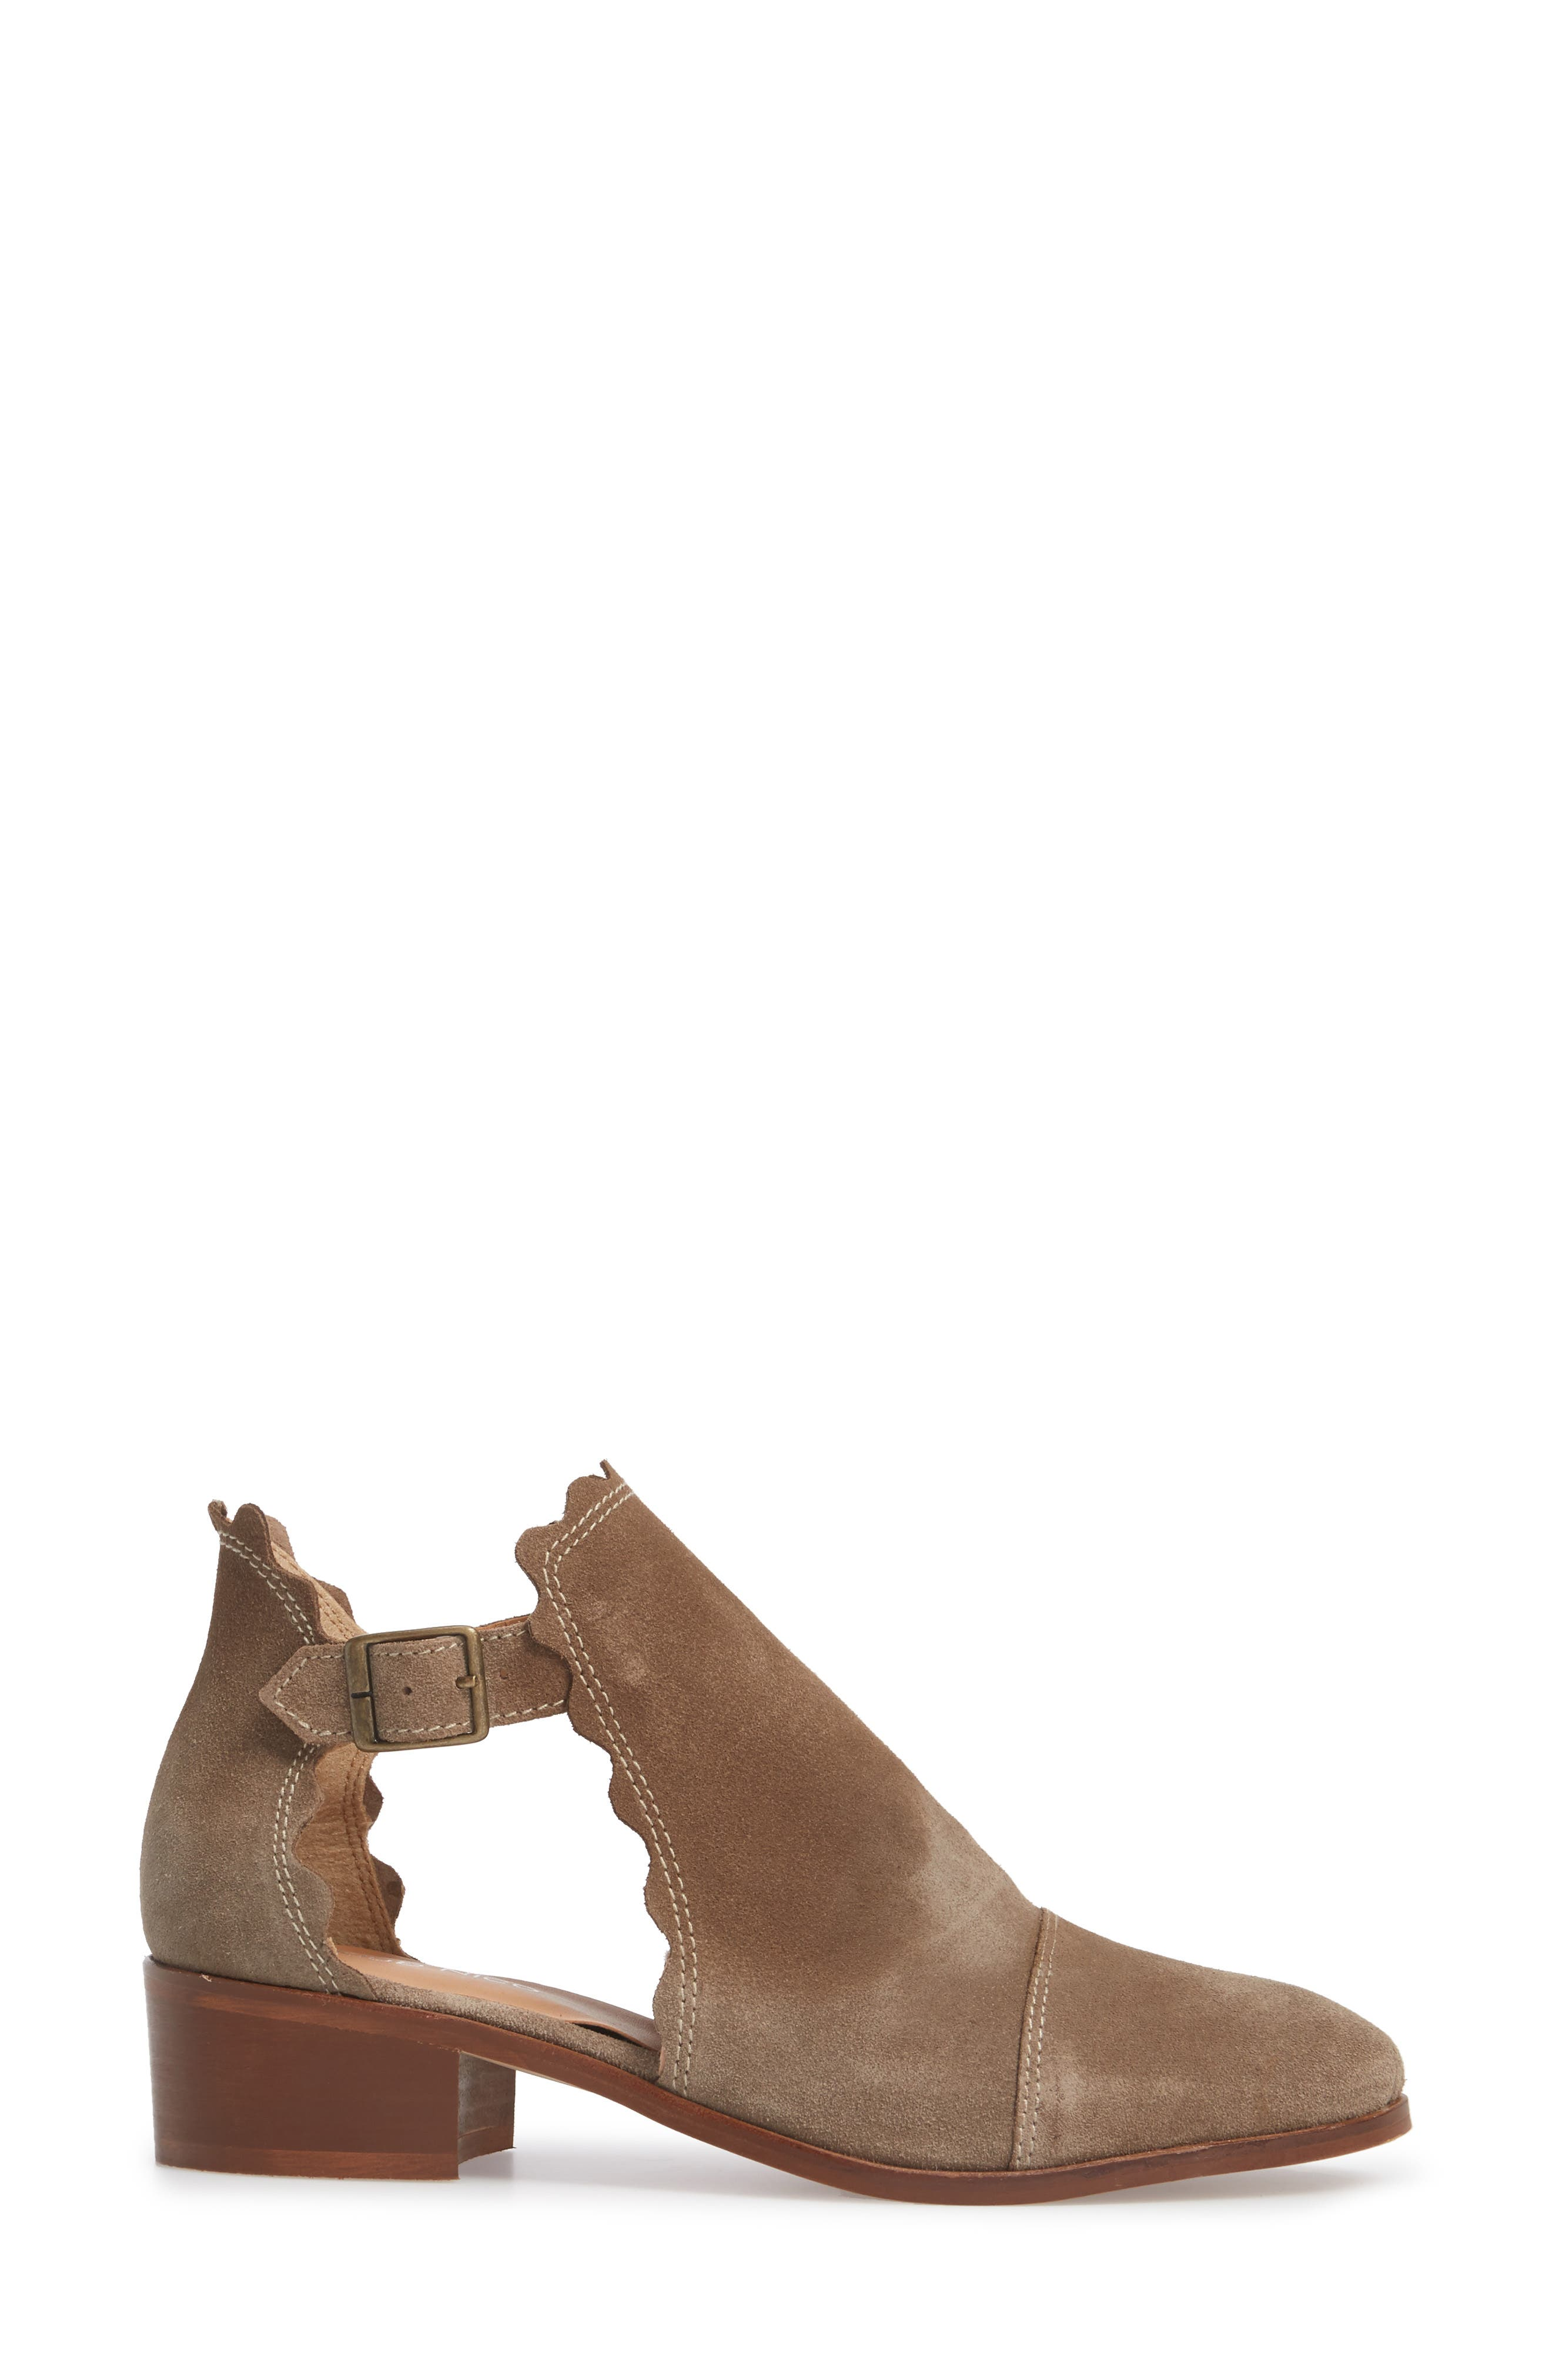 Beau Open Side Bootie,                             Alternate thumbnail 3, color,                             Taupe Suede